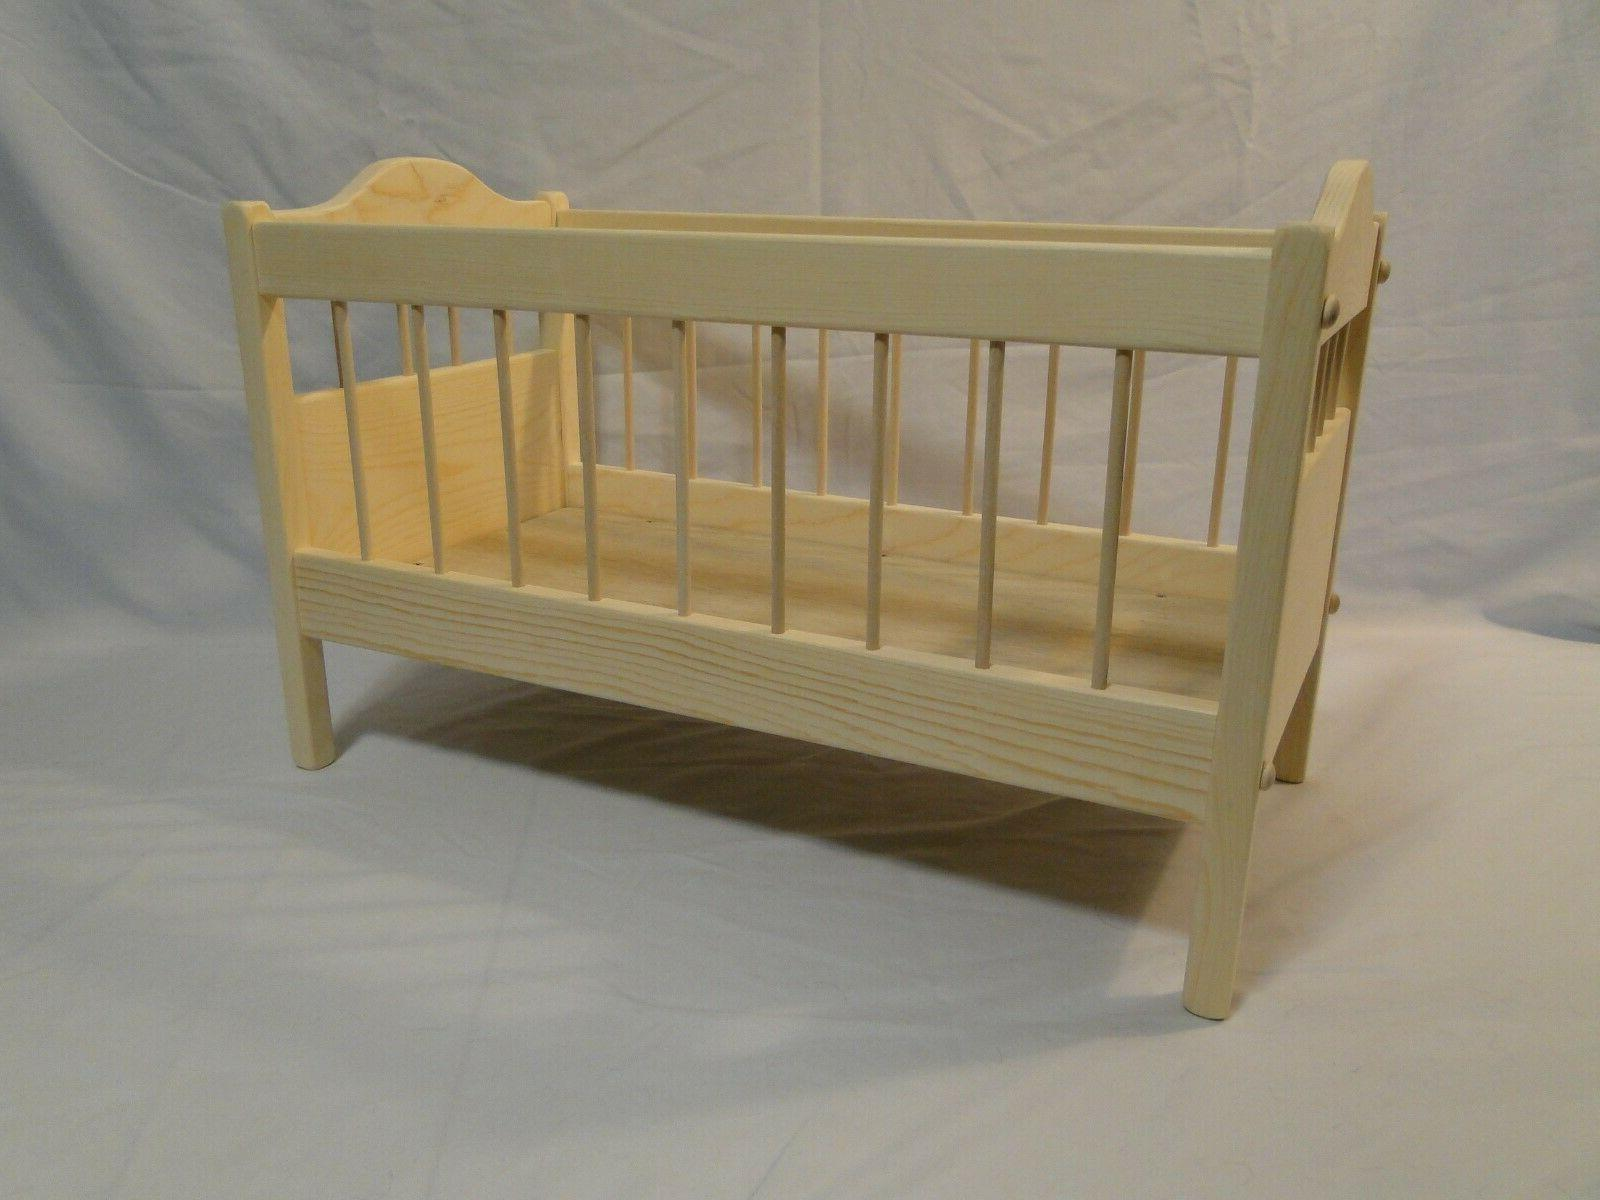 Crib for baby doll 18 inch Bitty Baby American Girl and smal